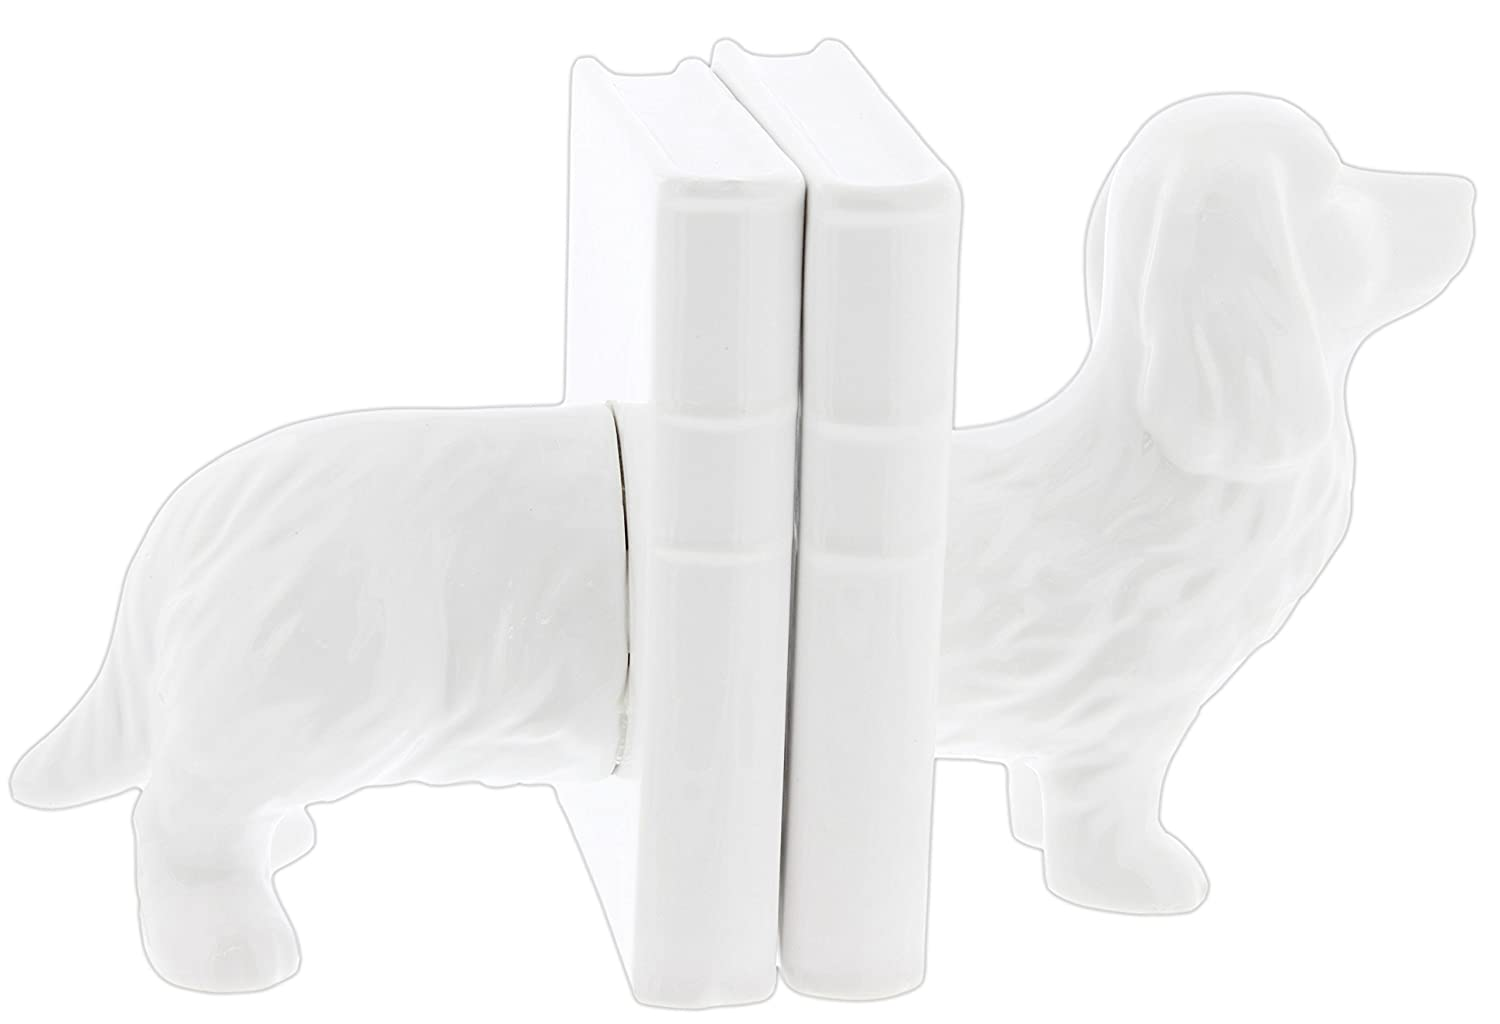 Drew DeRose White Ceramic Dachshund Bookends B078TPBF73